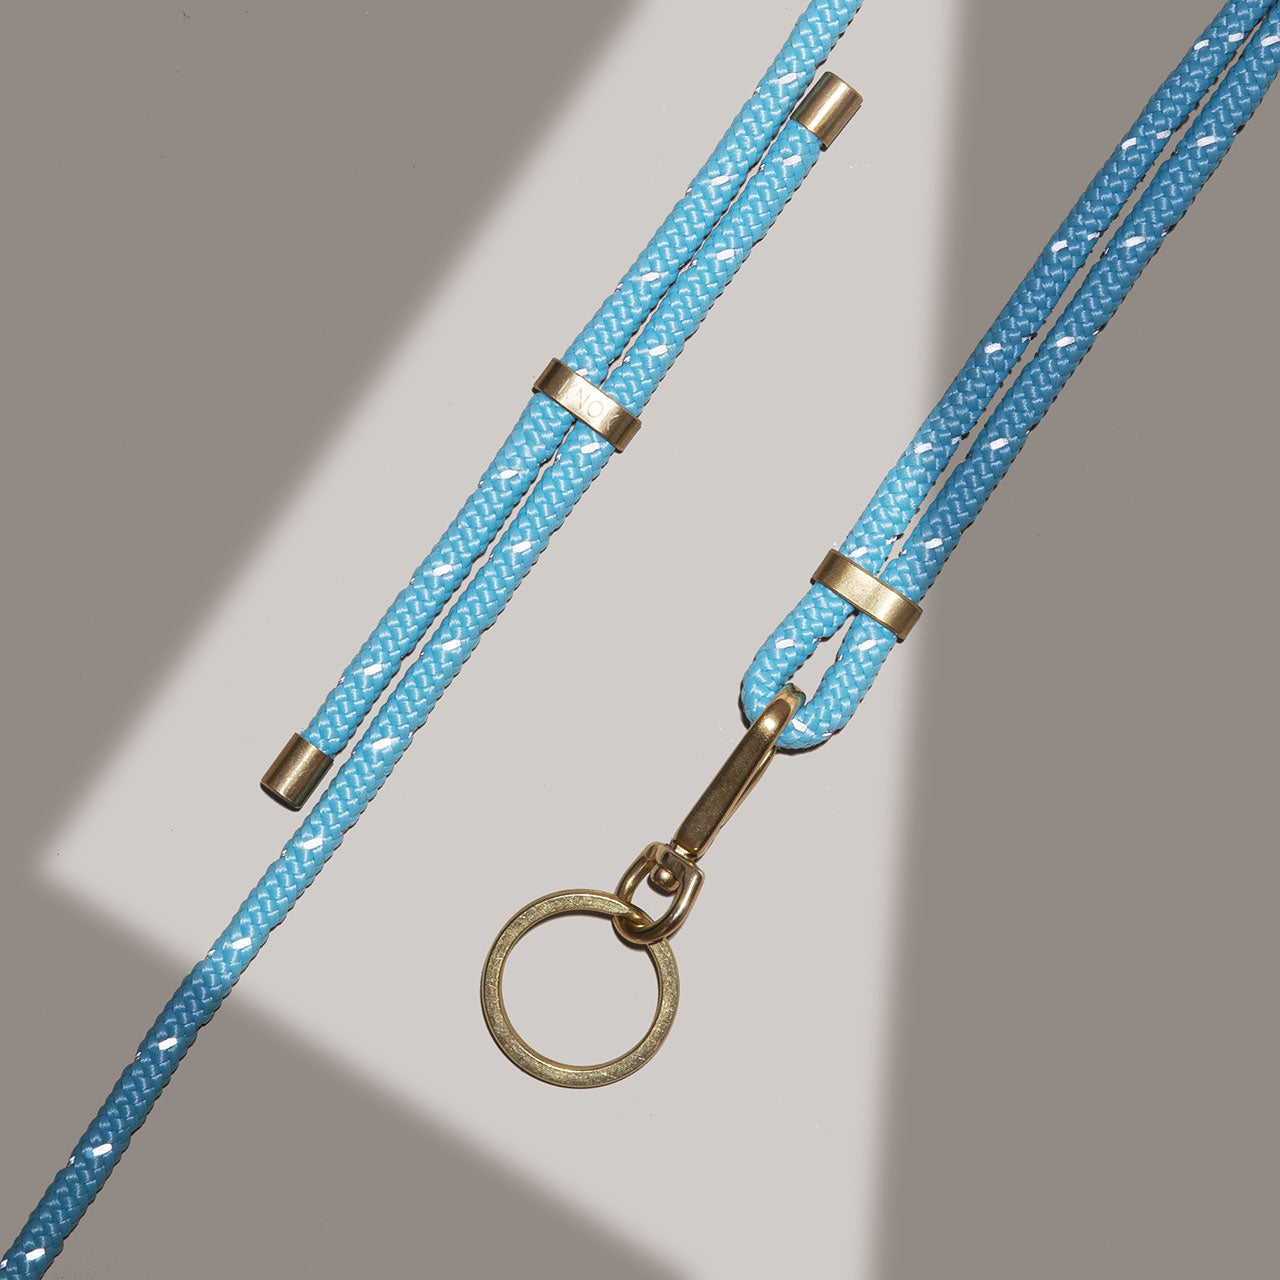 KEY HOLDER (TURQUOISE REFLECT)